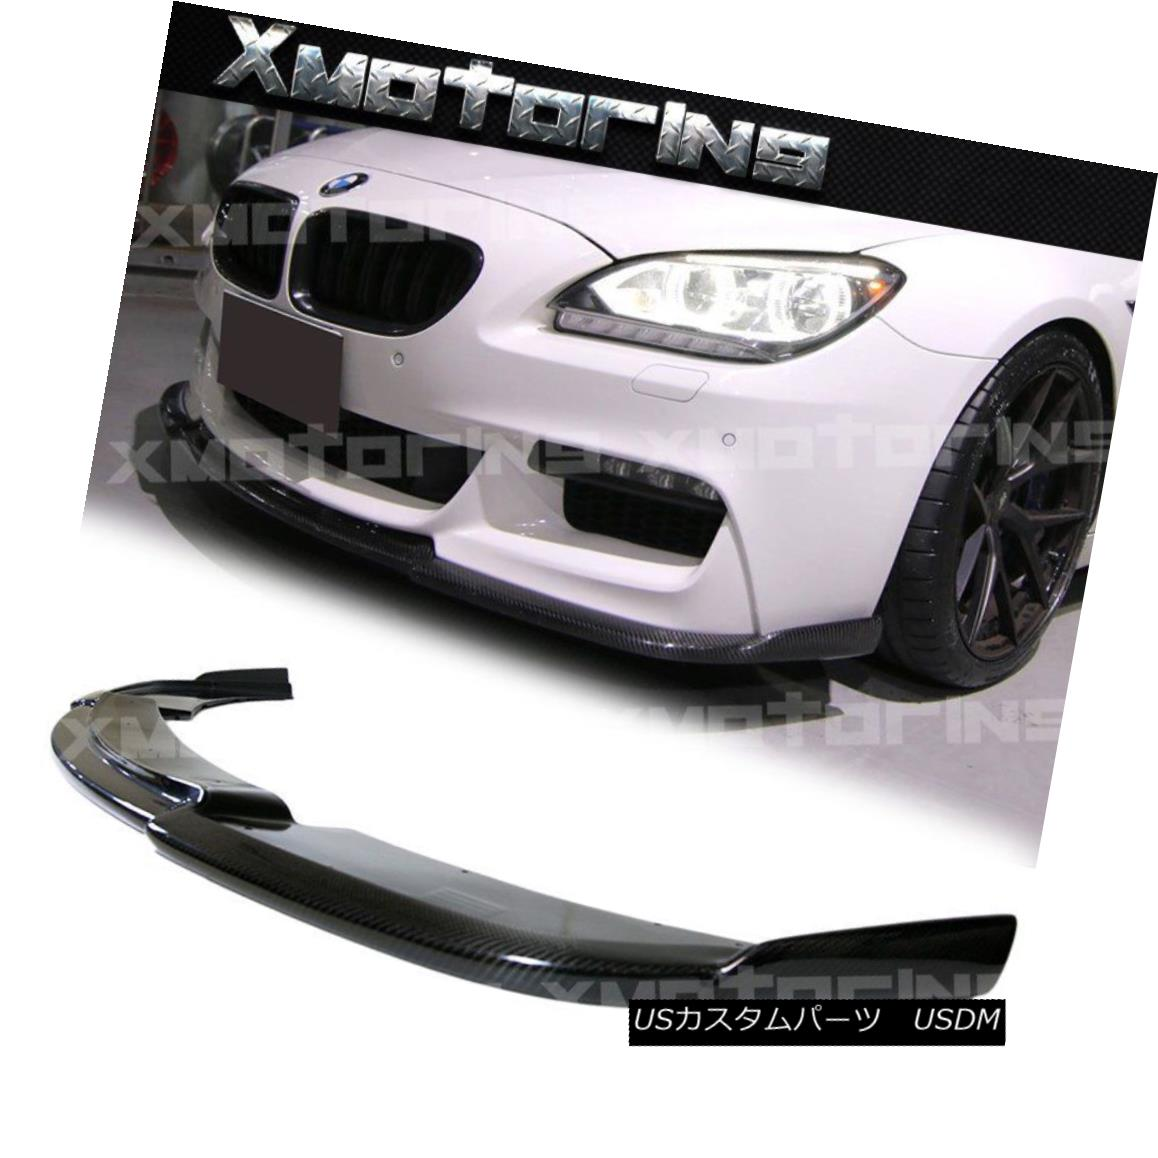 エアロパーツ HM Carbon Fiber Spoiler Lip For 2012-17 BMW F06 F12 F13 640i 650i M-tech Bumper HMカーボンファイバースポイラーリップfor 2012-17 BMW F06 F12 F13 640i 650i M-techバンパー